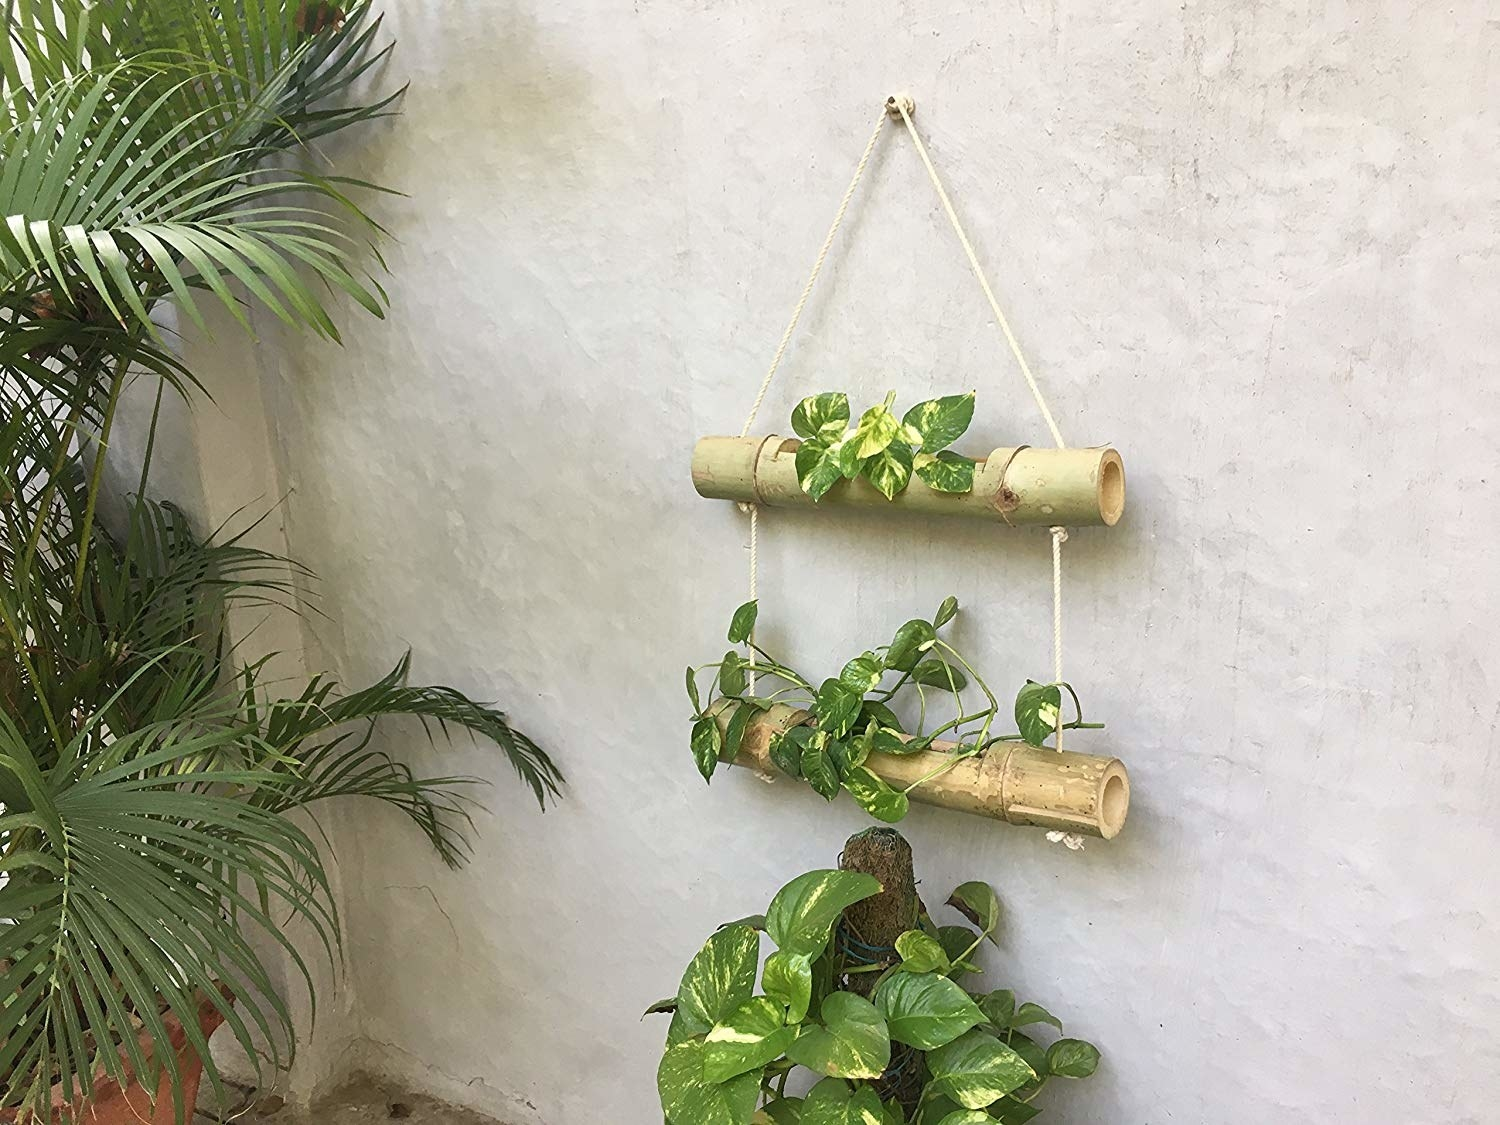 A bamboo planter hung on a wall next to plants.